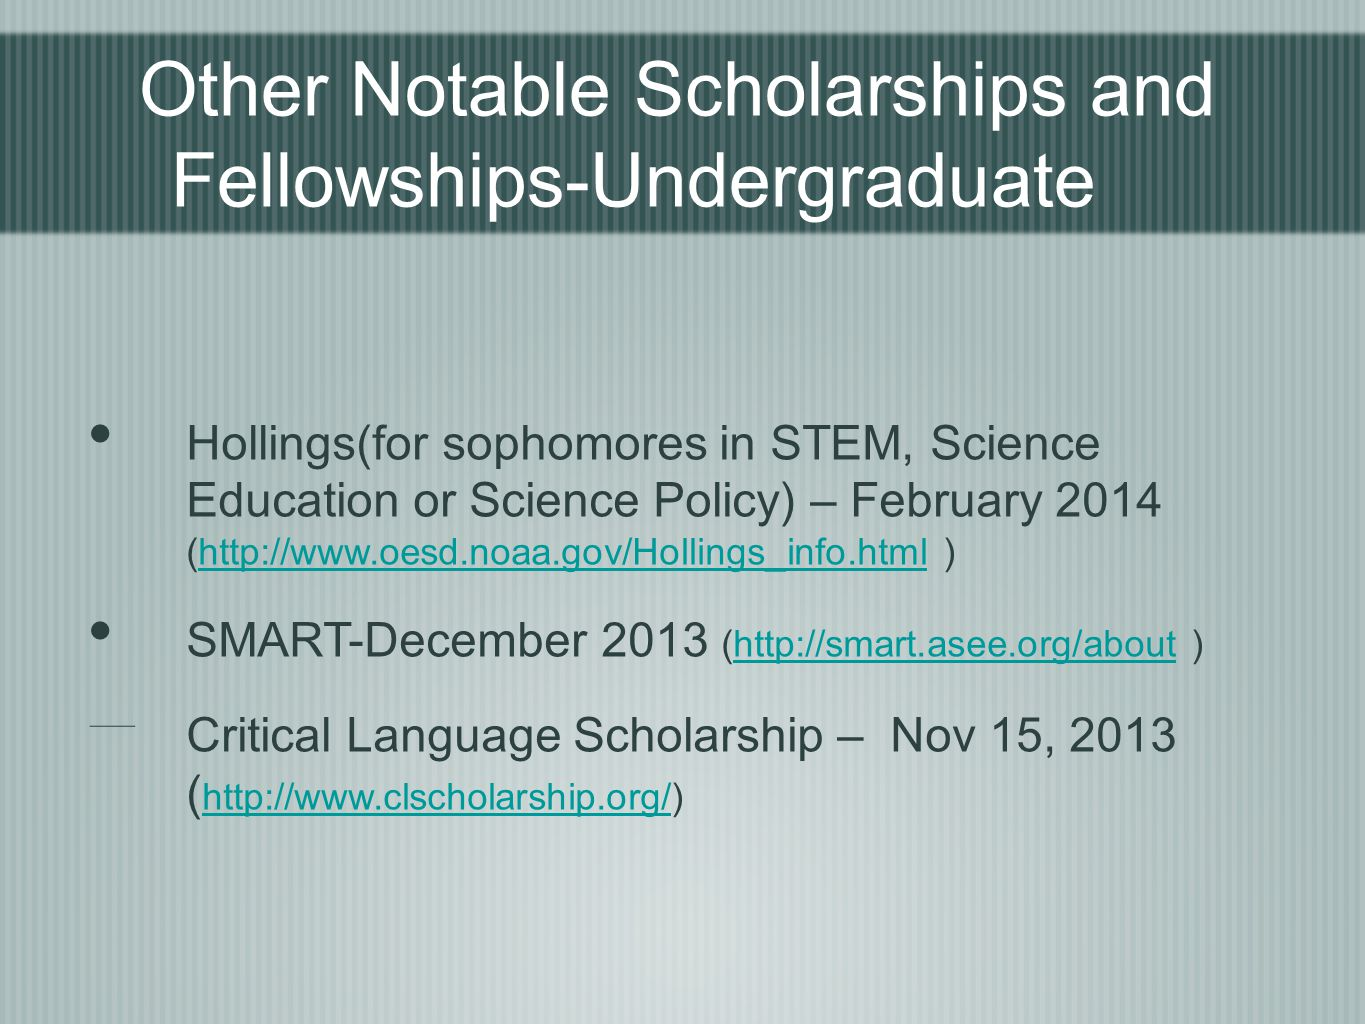 Other Notable Scholarships and Fellowships-Undergraduate Hollings(for sophomores in STEM, Science Education or Science Policy) – February 2014 (http://www.oesd.noaa.gov/Hollings_info.html )http://www.oesd.noaa.gov/Hollings_info.html SMART-December 2013 (http://smart.asee.org/about )http://smart.asee.org/about Critical Language Scholarship – Nov 15, 2013 ( http://www.clscholarship.org/) http://www.clscholarship.org/